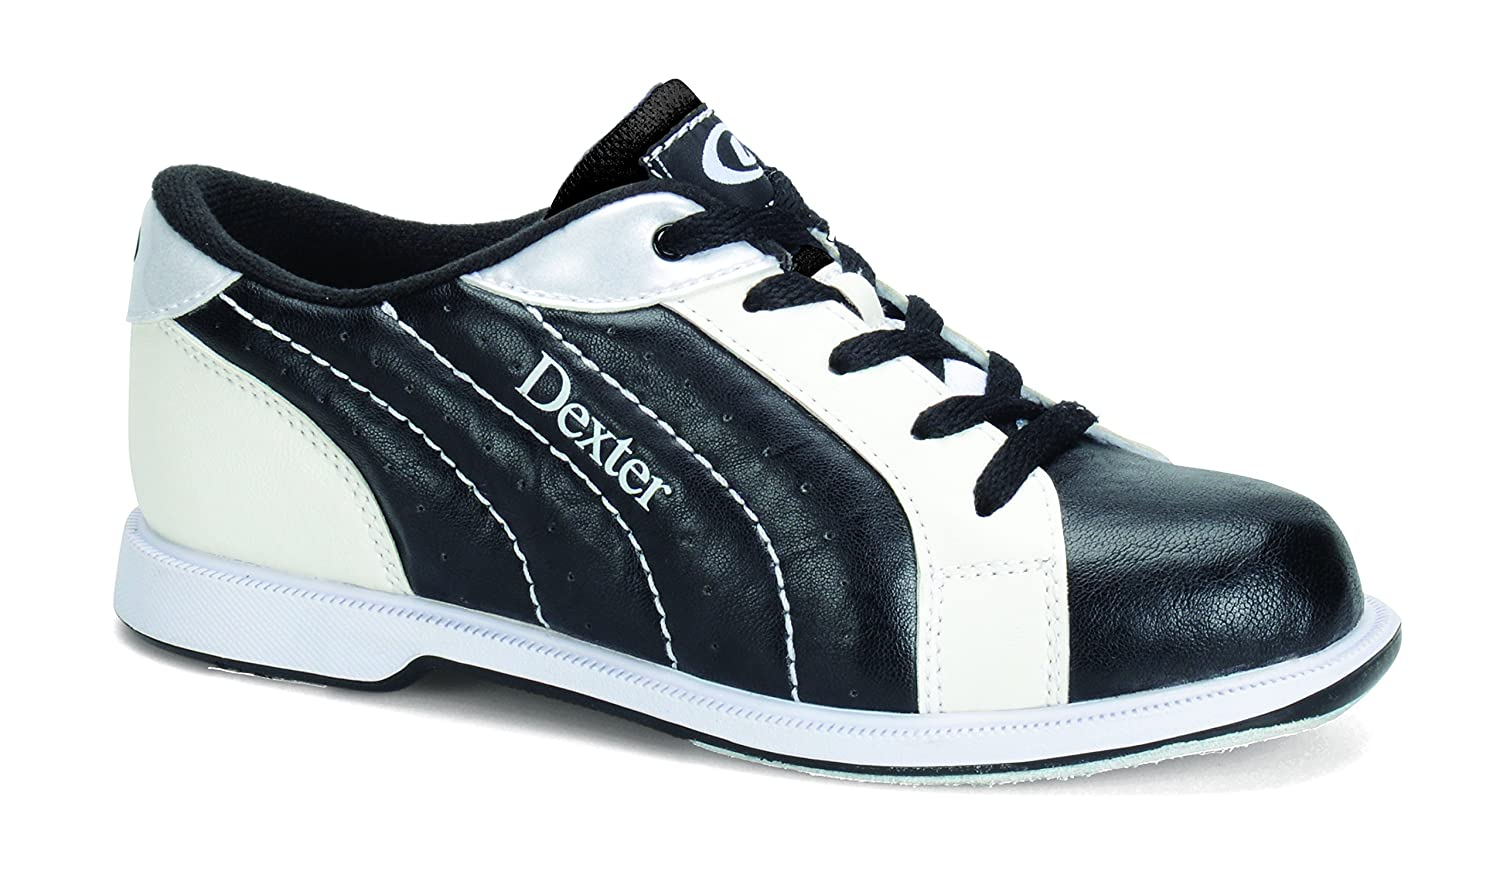 9b614a47fe4 Dexter Women s Groove II Wide Bowling Shoes